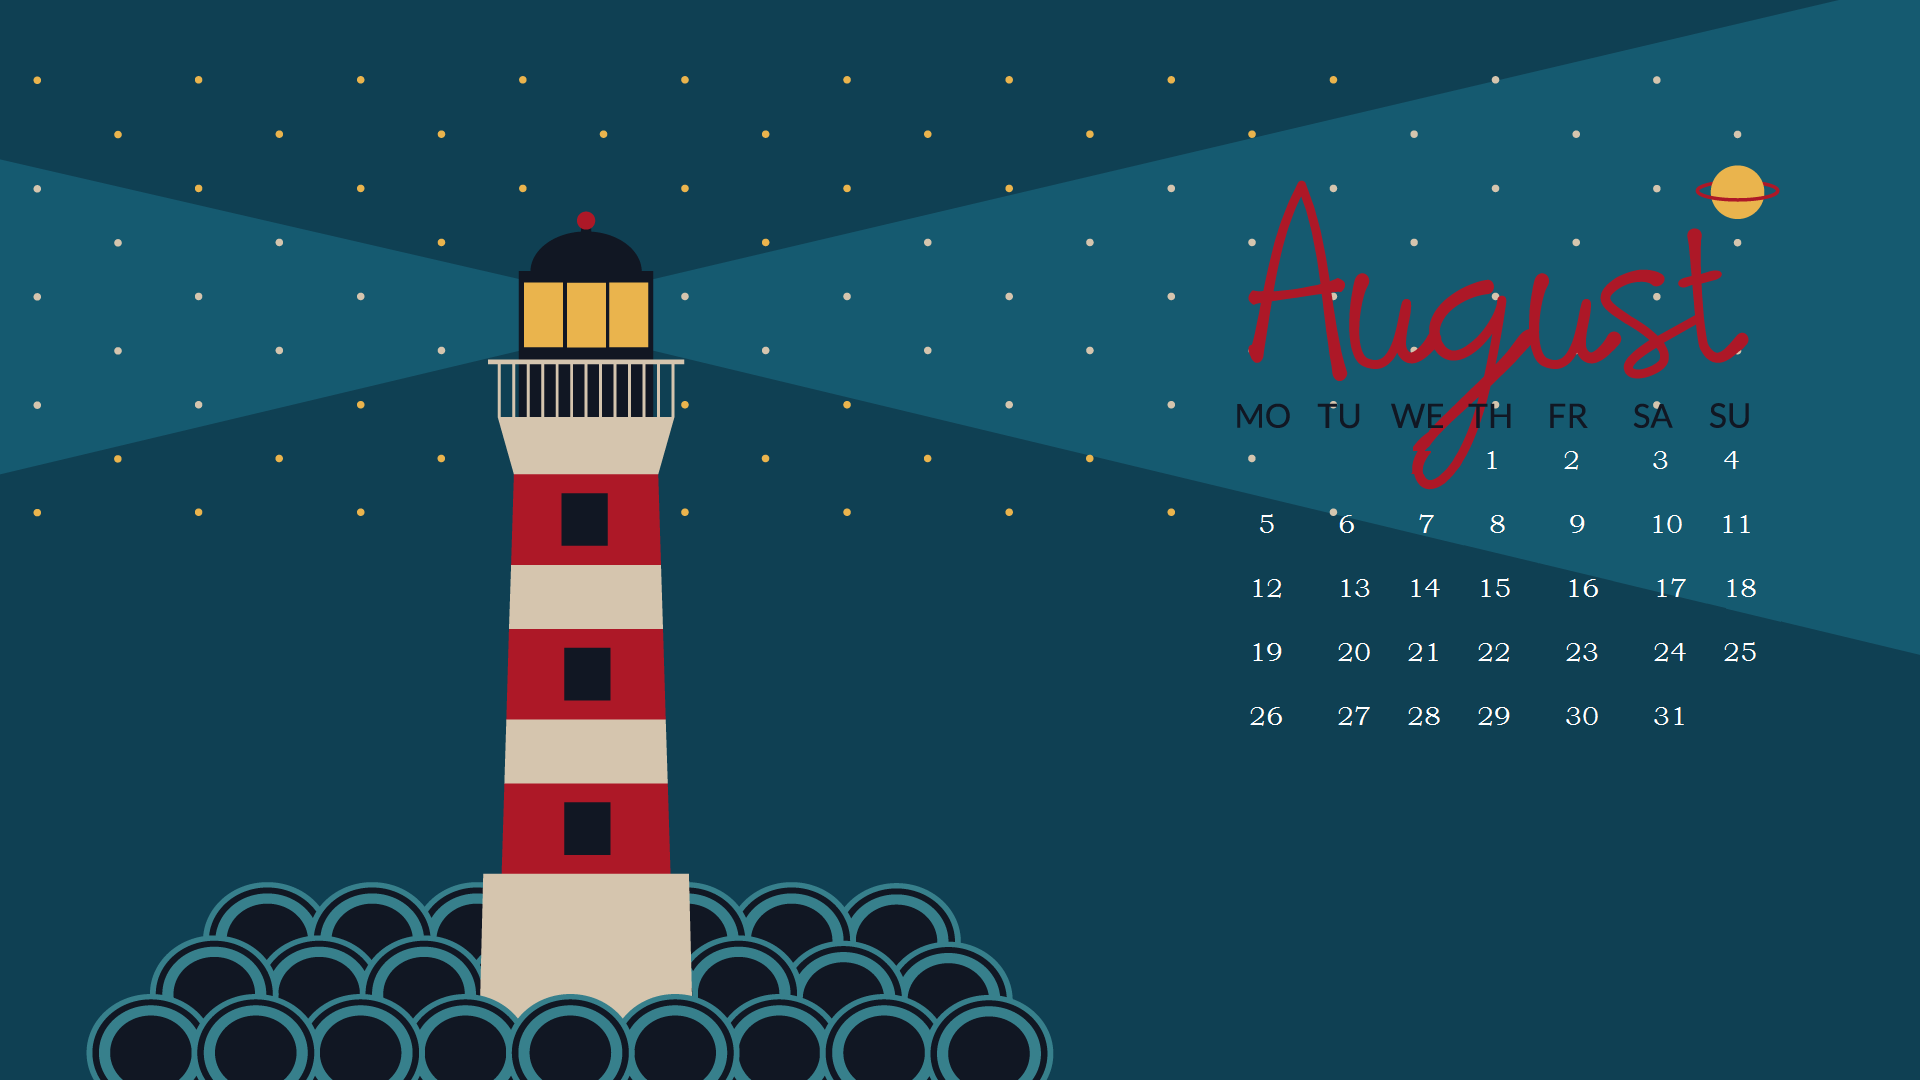 August 2019 HD Wallpaper With Calendar